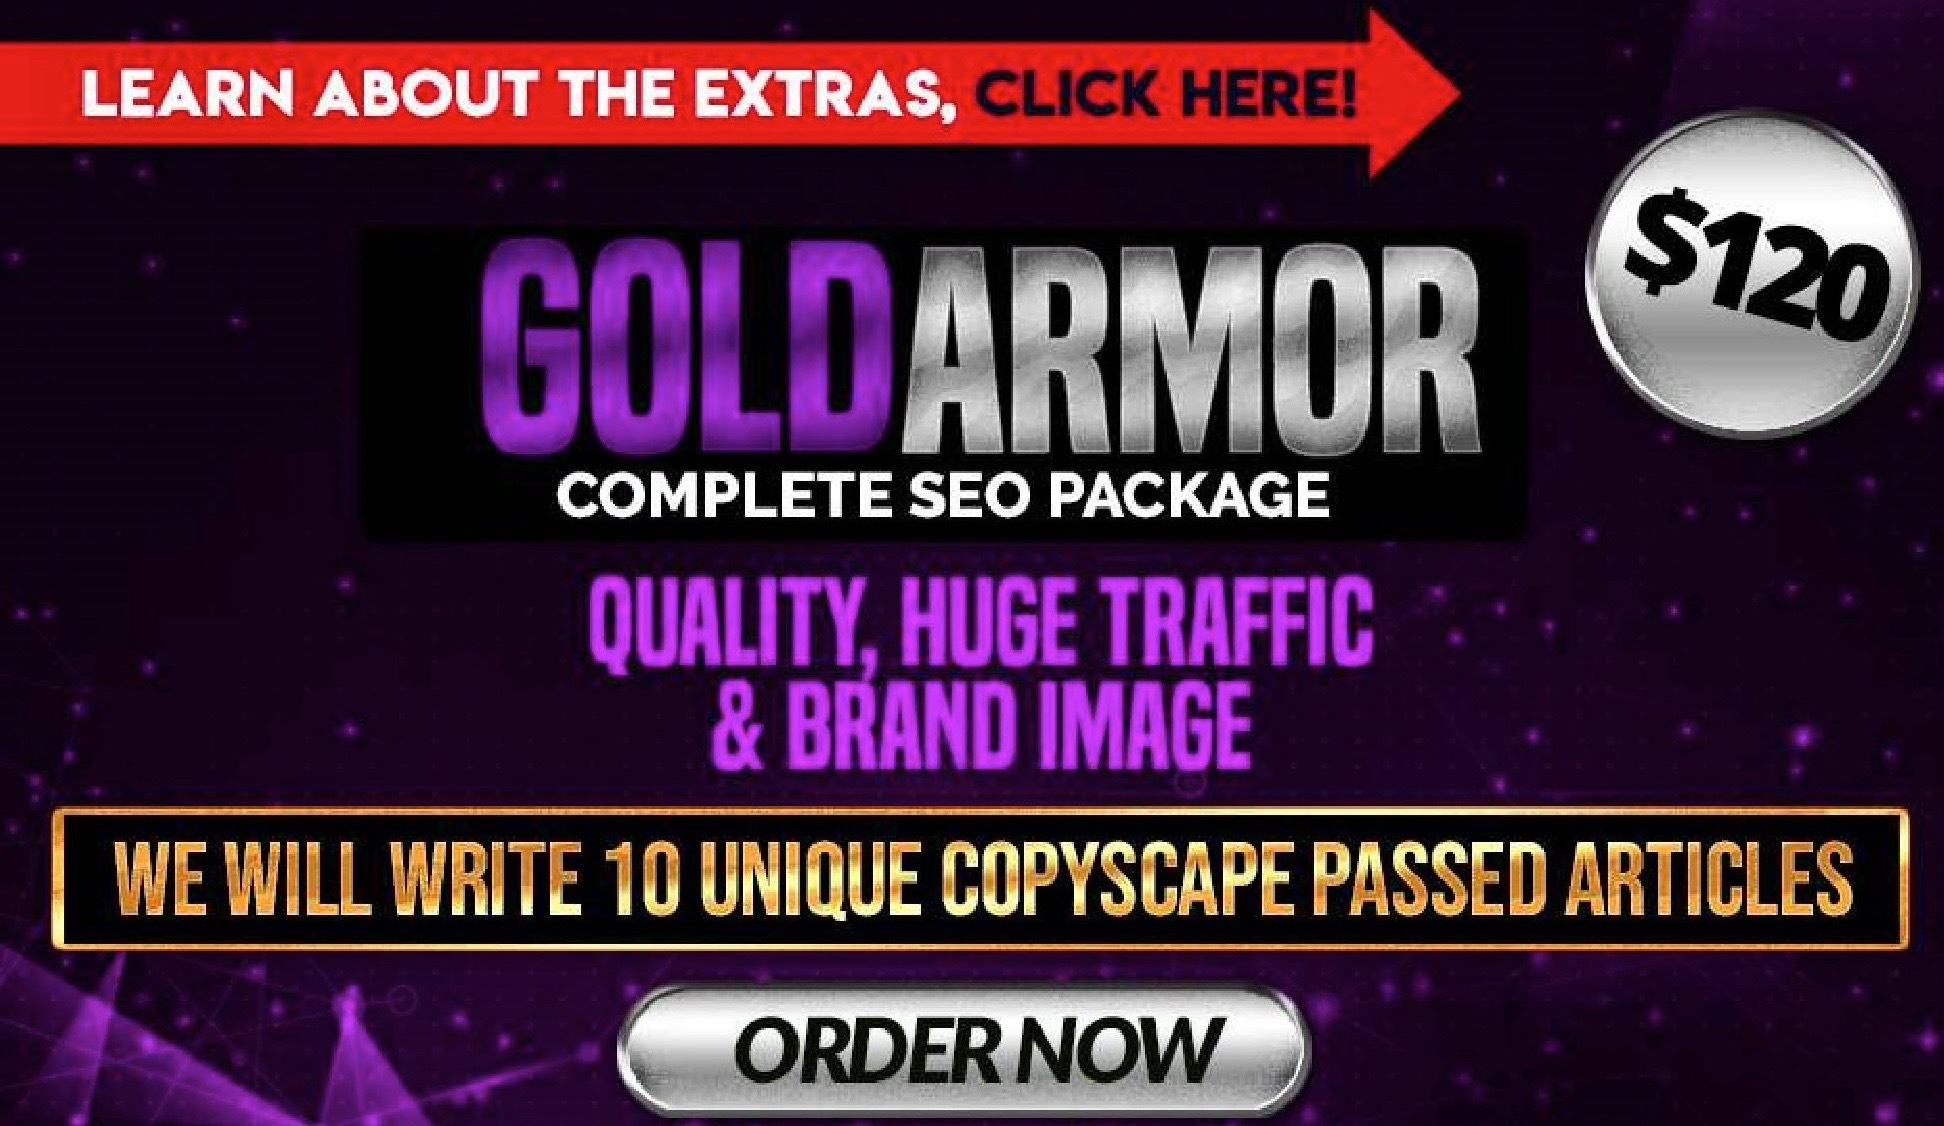 Custom offer for Uprank Gold Armor Complete SEO Package for Top Ranking